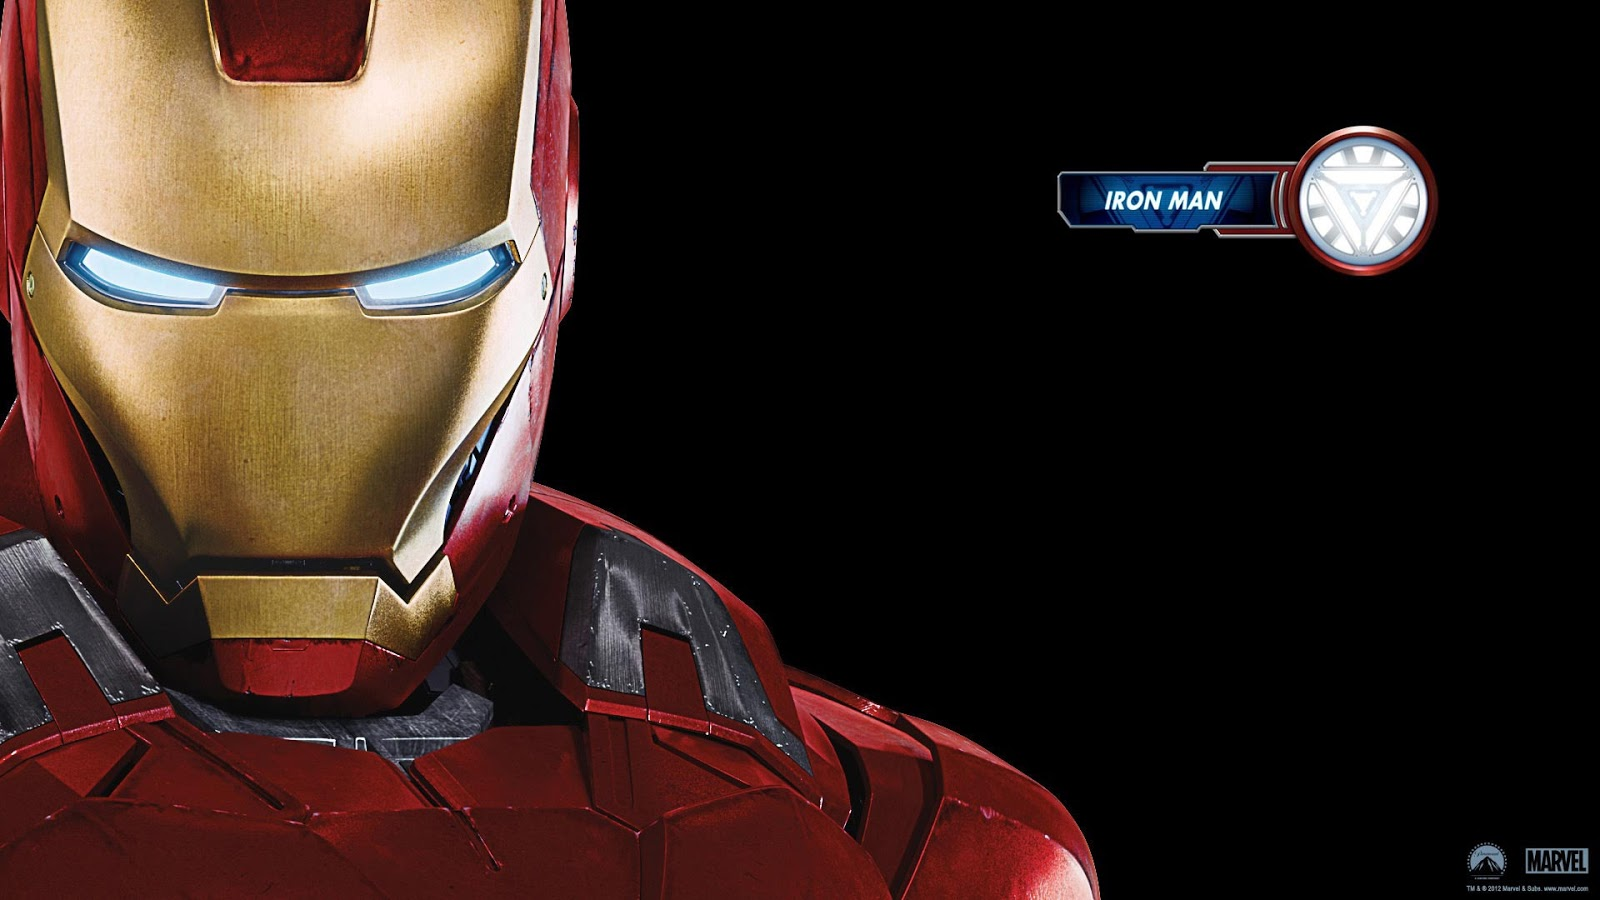 Iron Man in Avengers Wallpaper HD